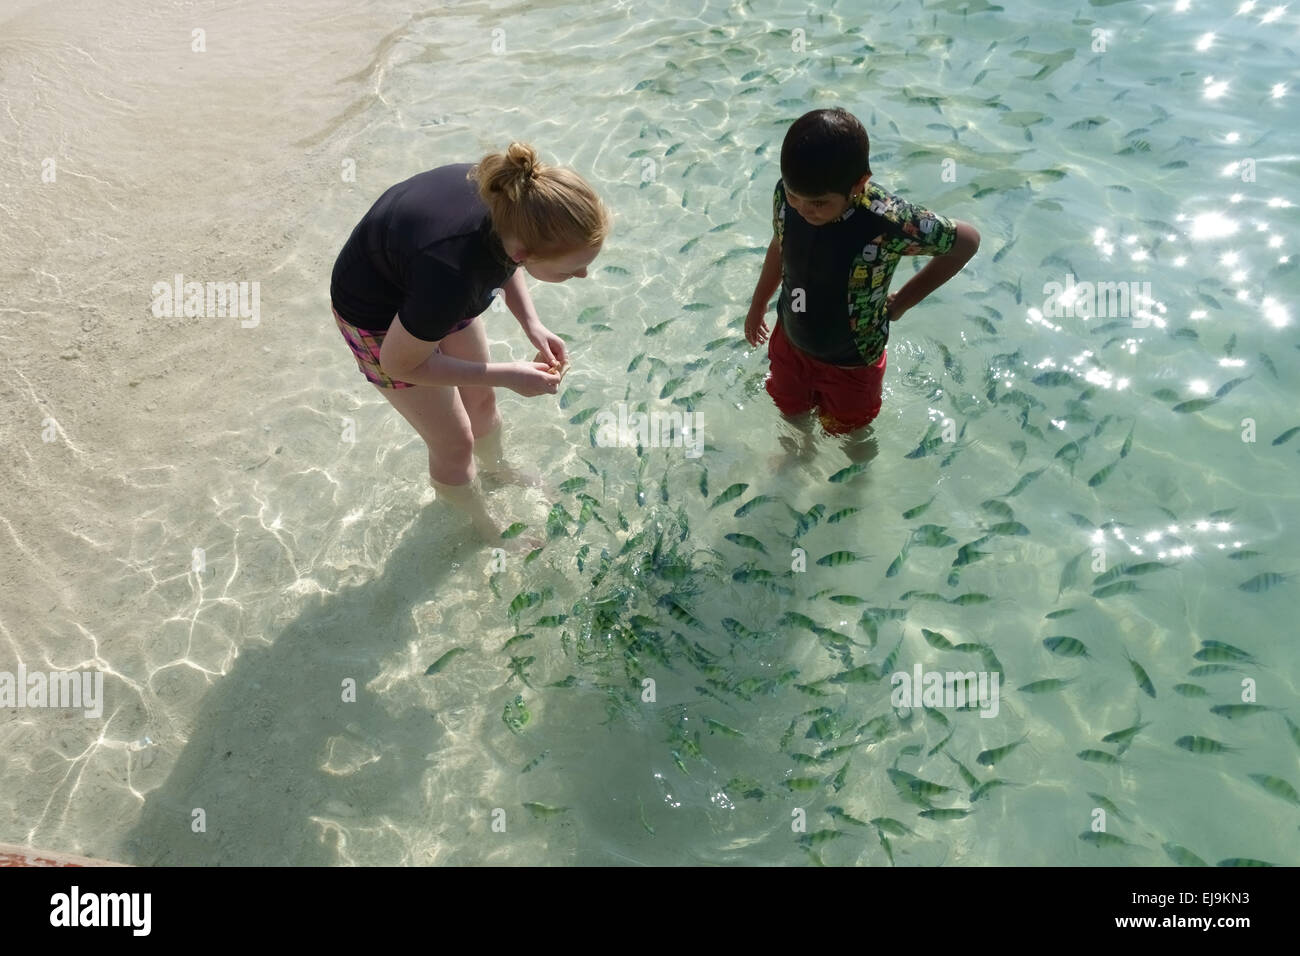 A girl and young boy feeding Indo-Pacific sergeant fish, Abudefduf vaigiensis, in the clear waters off Koh Poda - Stock Image